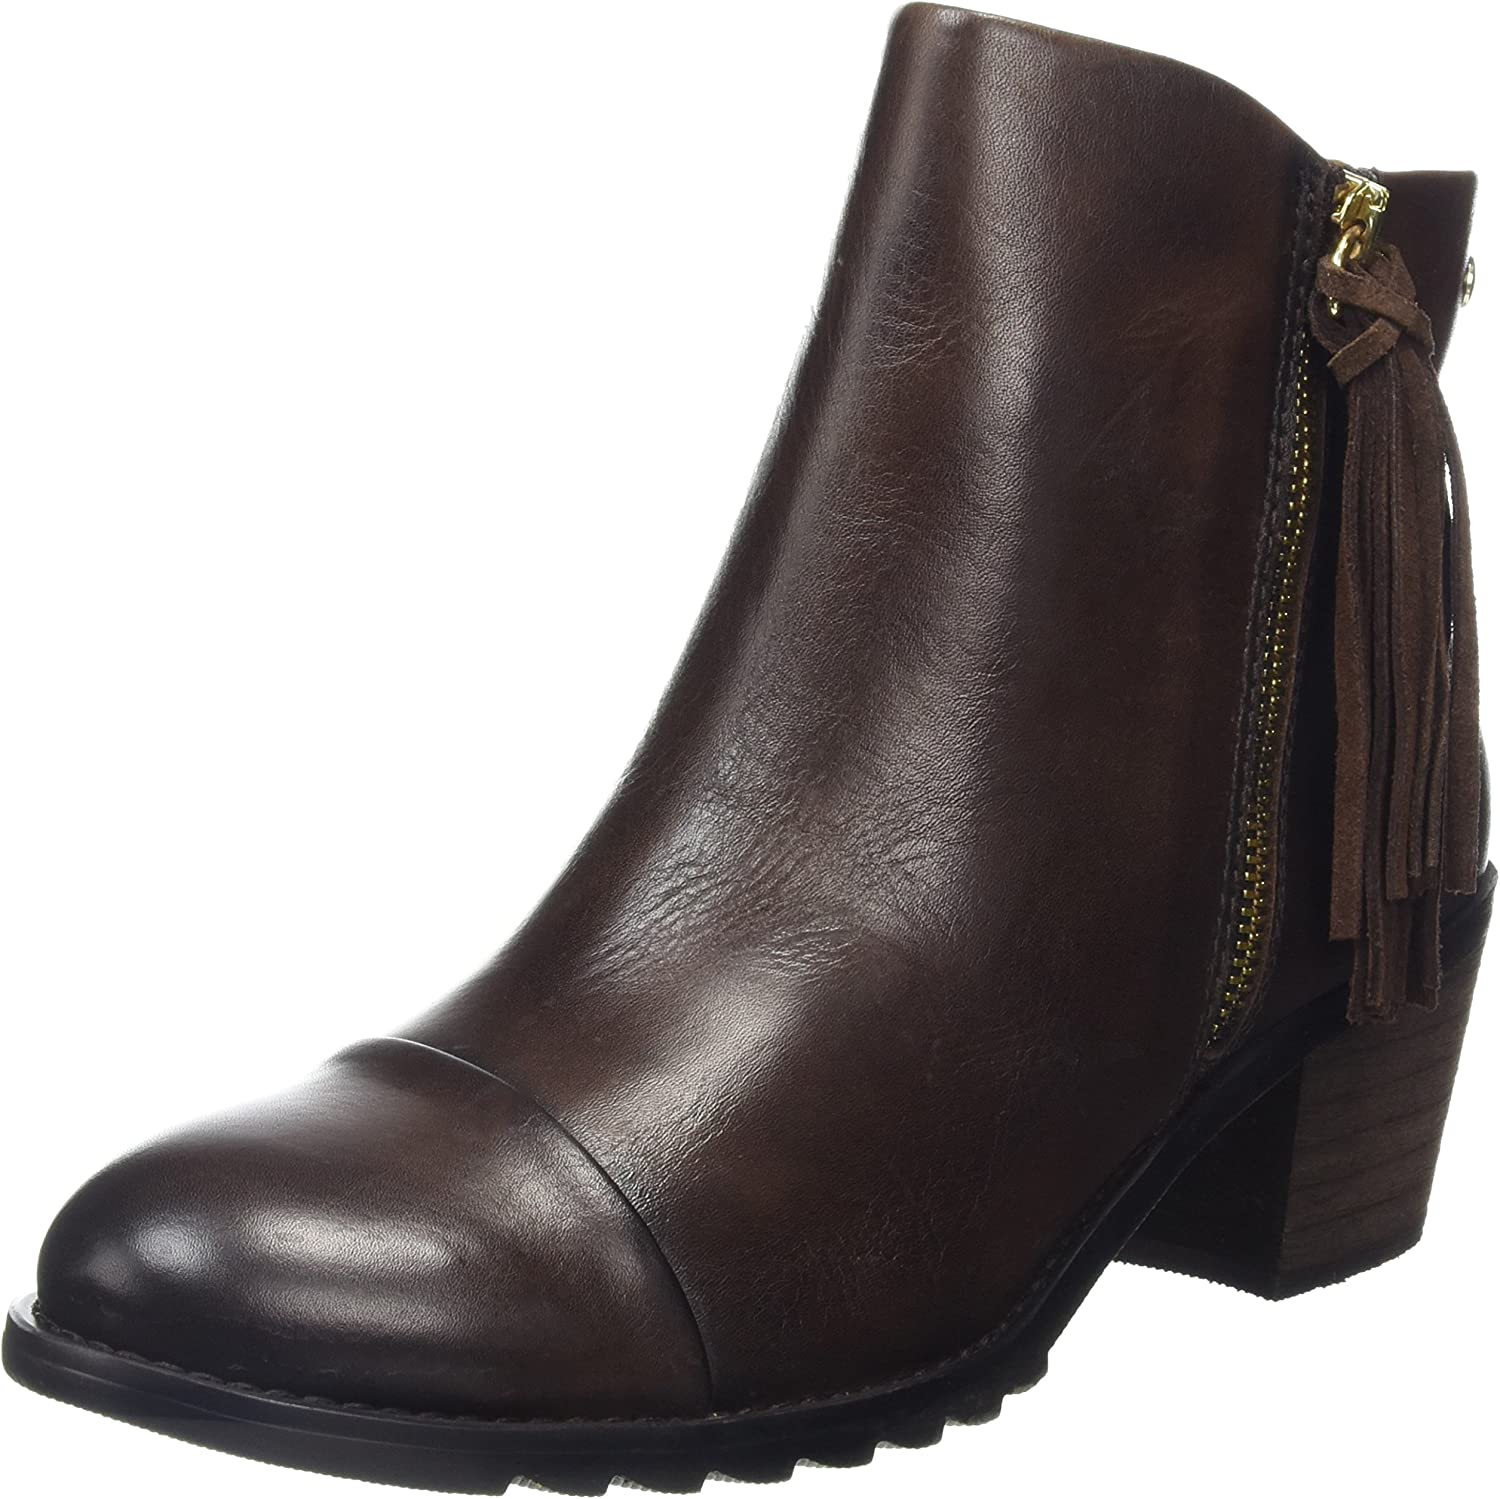 Women's Pikolinos, Andorra 913-9553 Ankle Boot BROWN 41 M